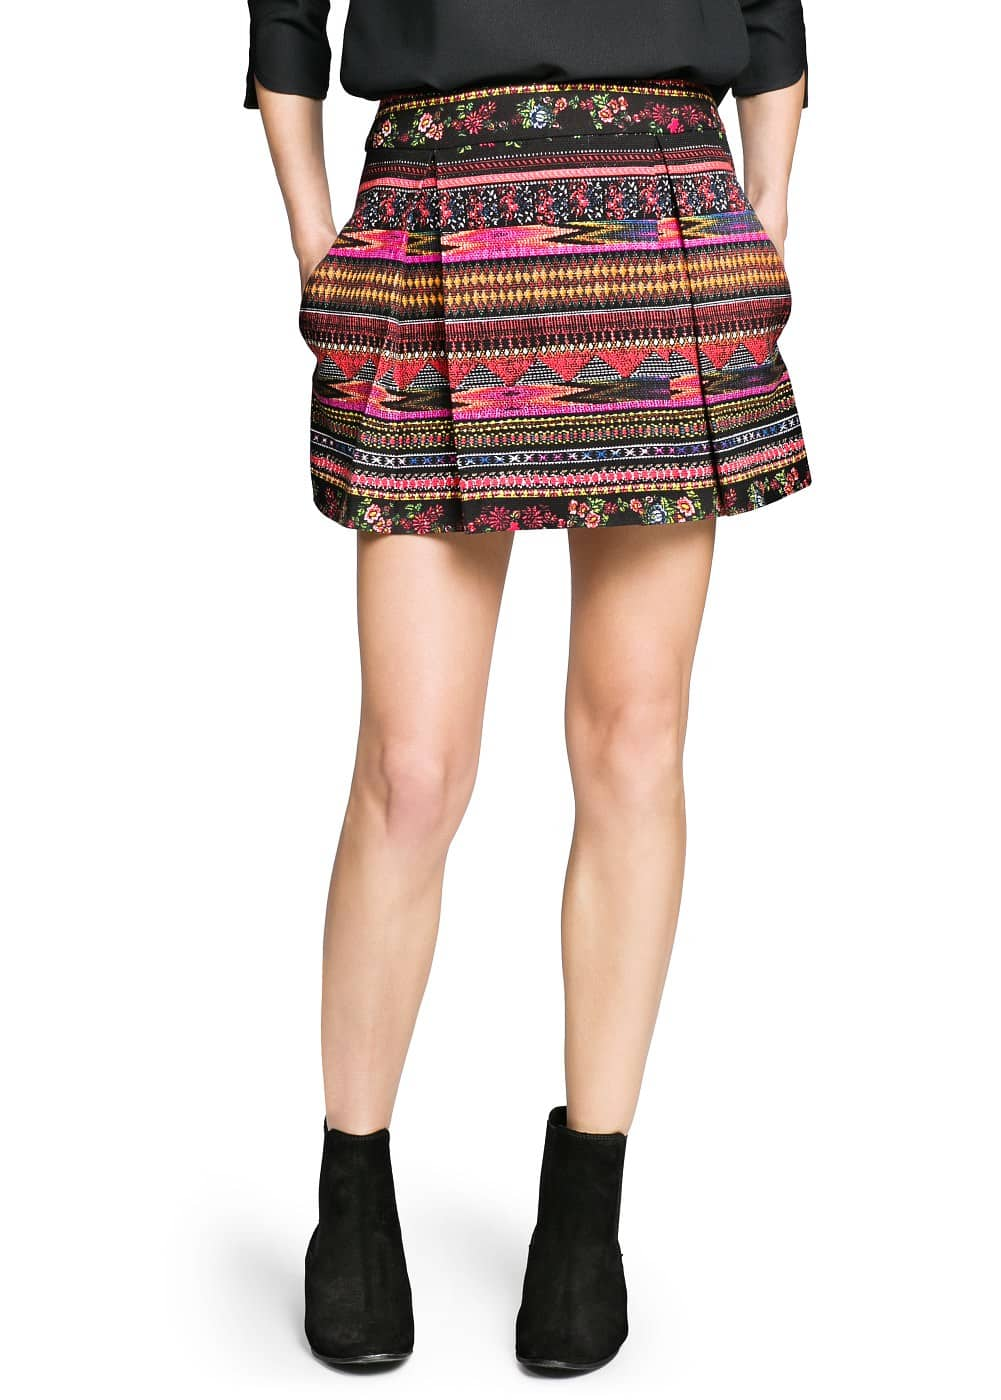 Textured ethnic skirt